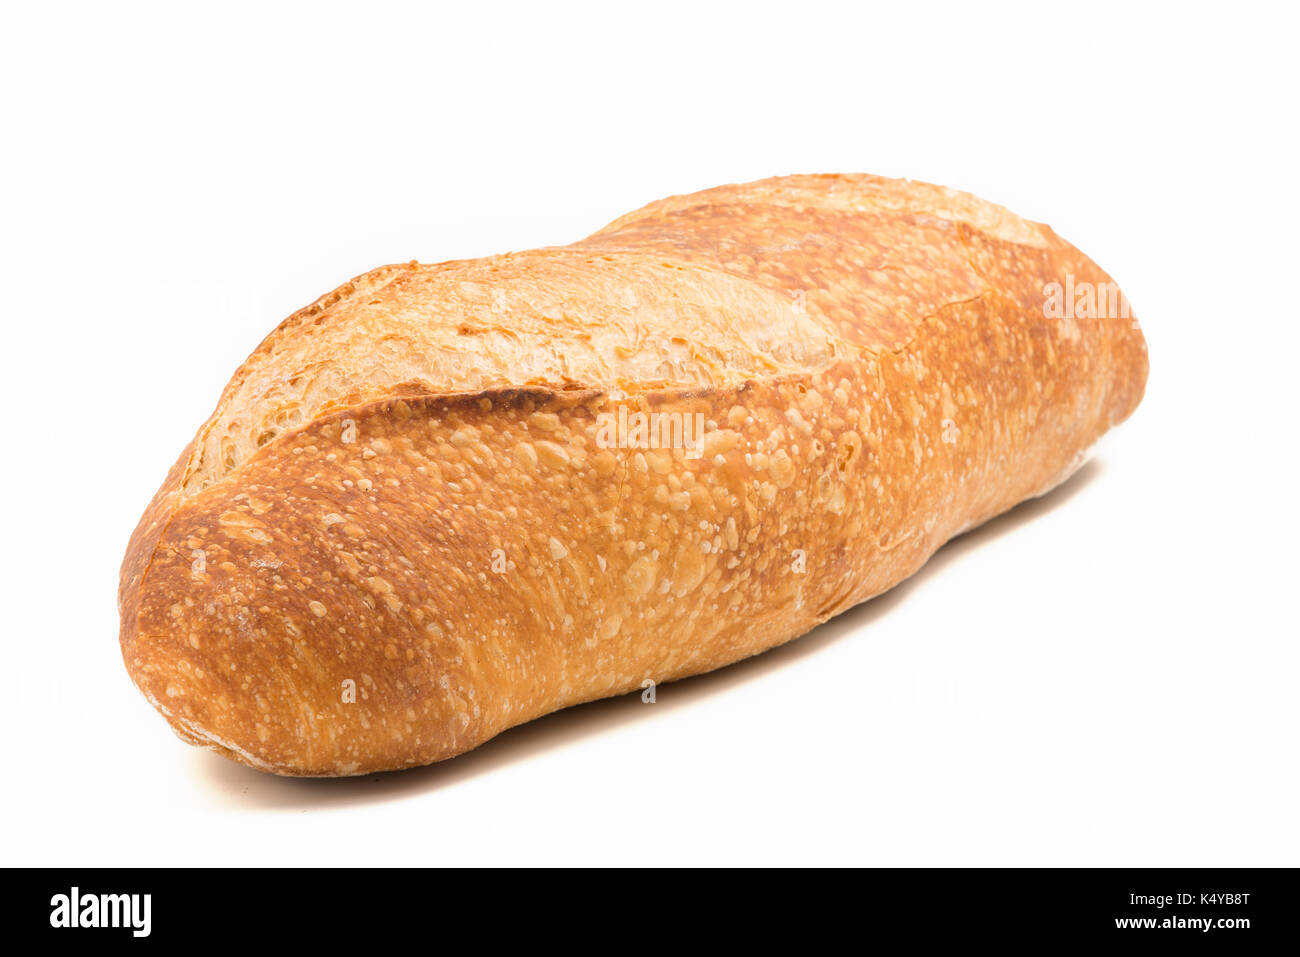 rustic wheat bread isolated on white background - Stock Image